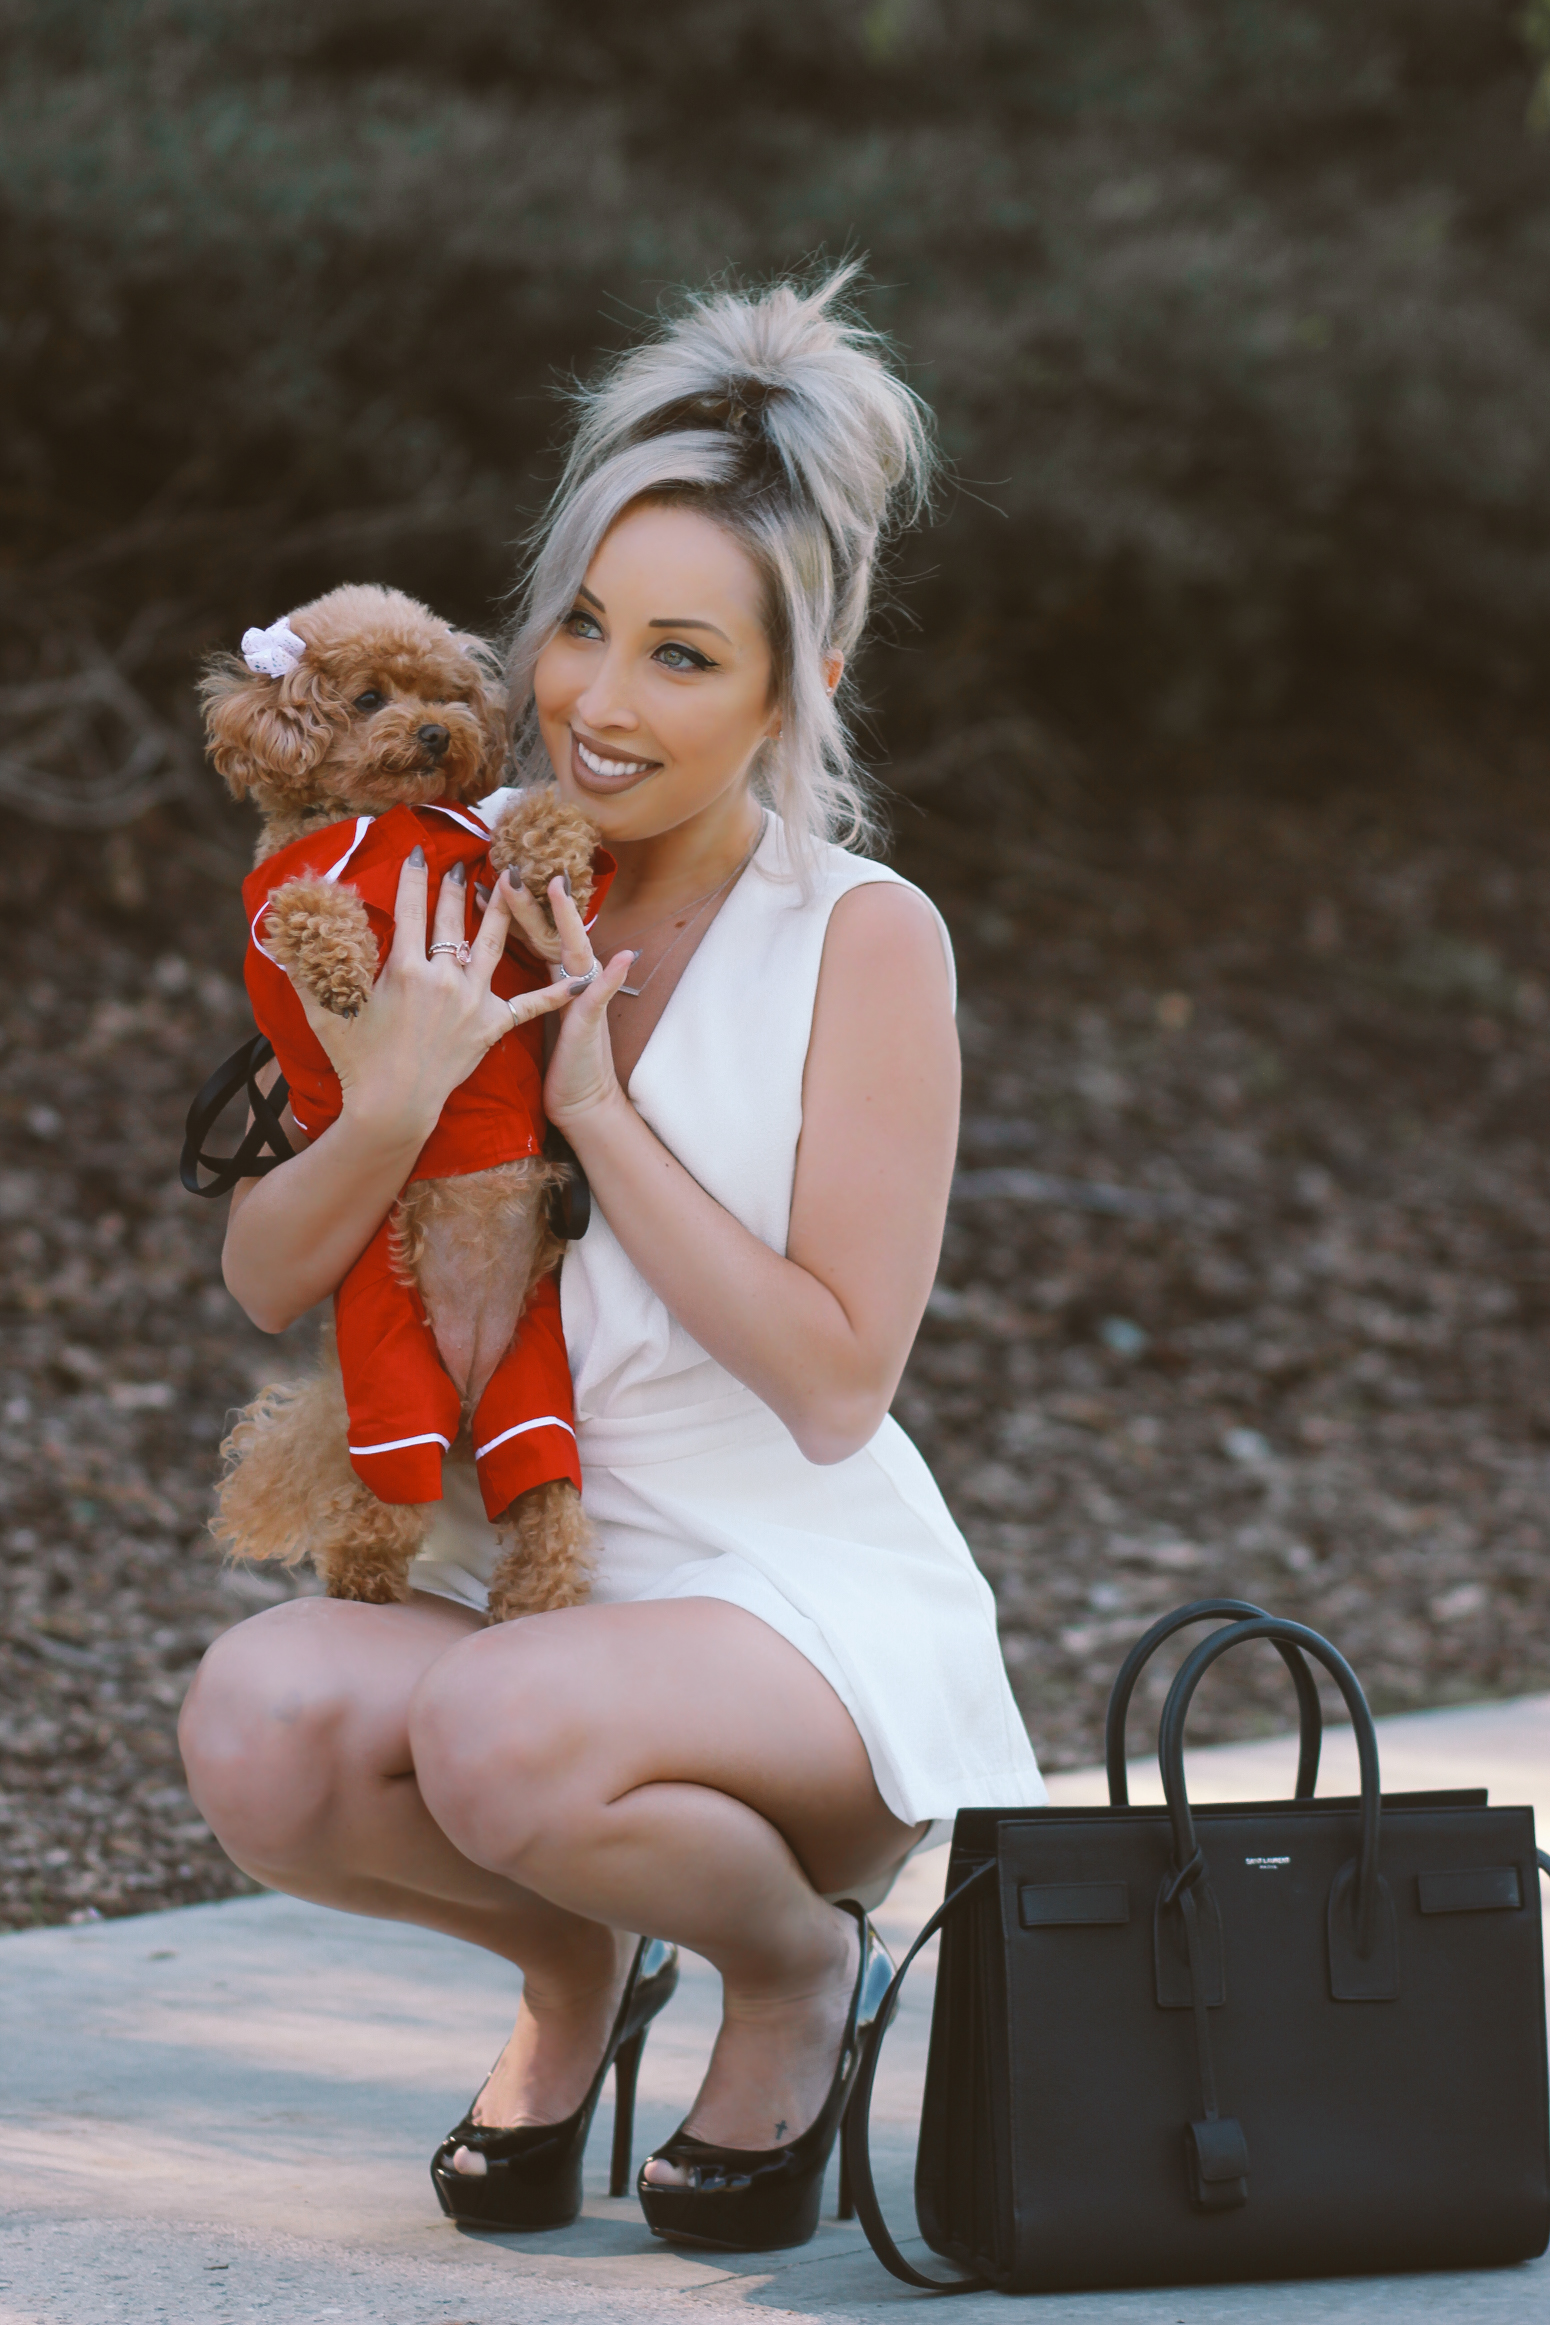 Blondie in the City | White Bride To Be Romper | Puppy Pajamas